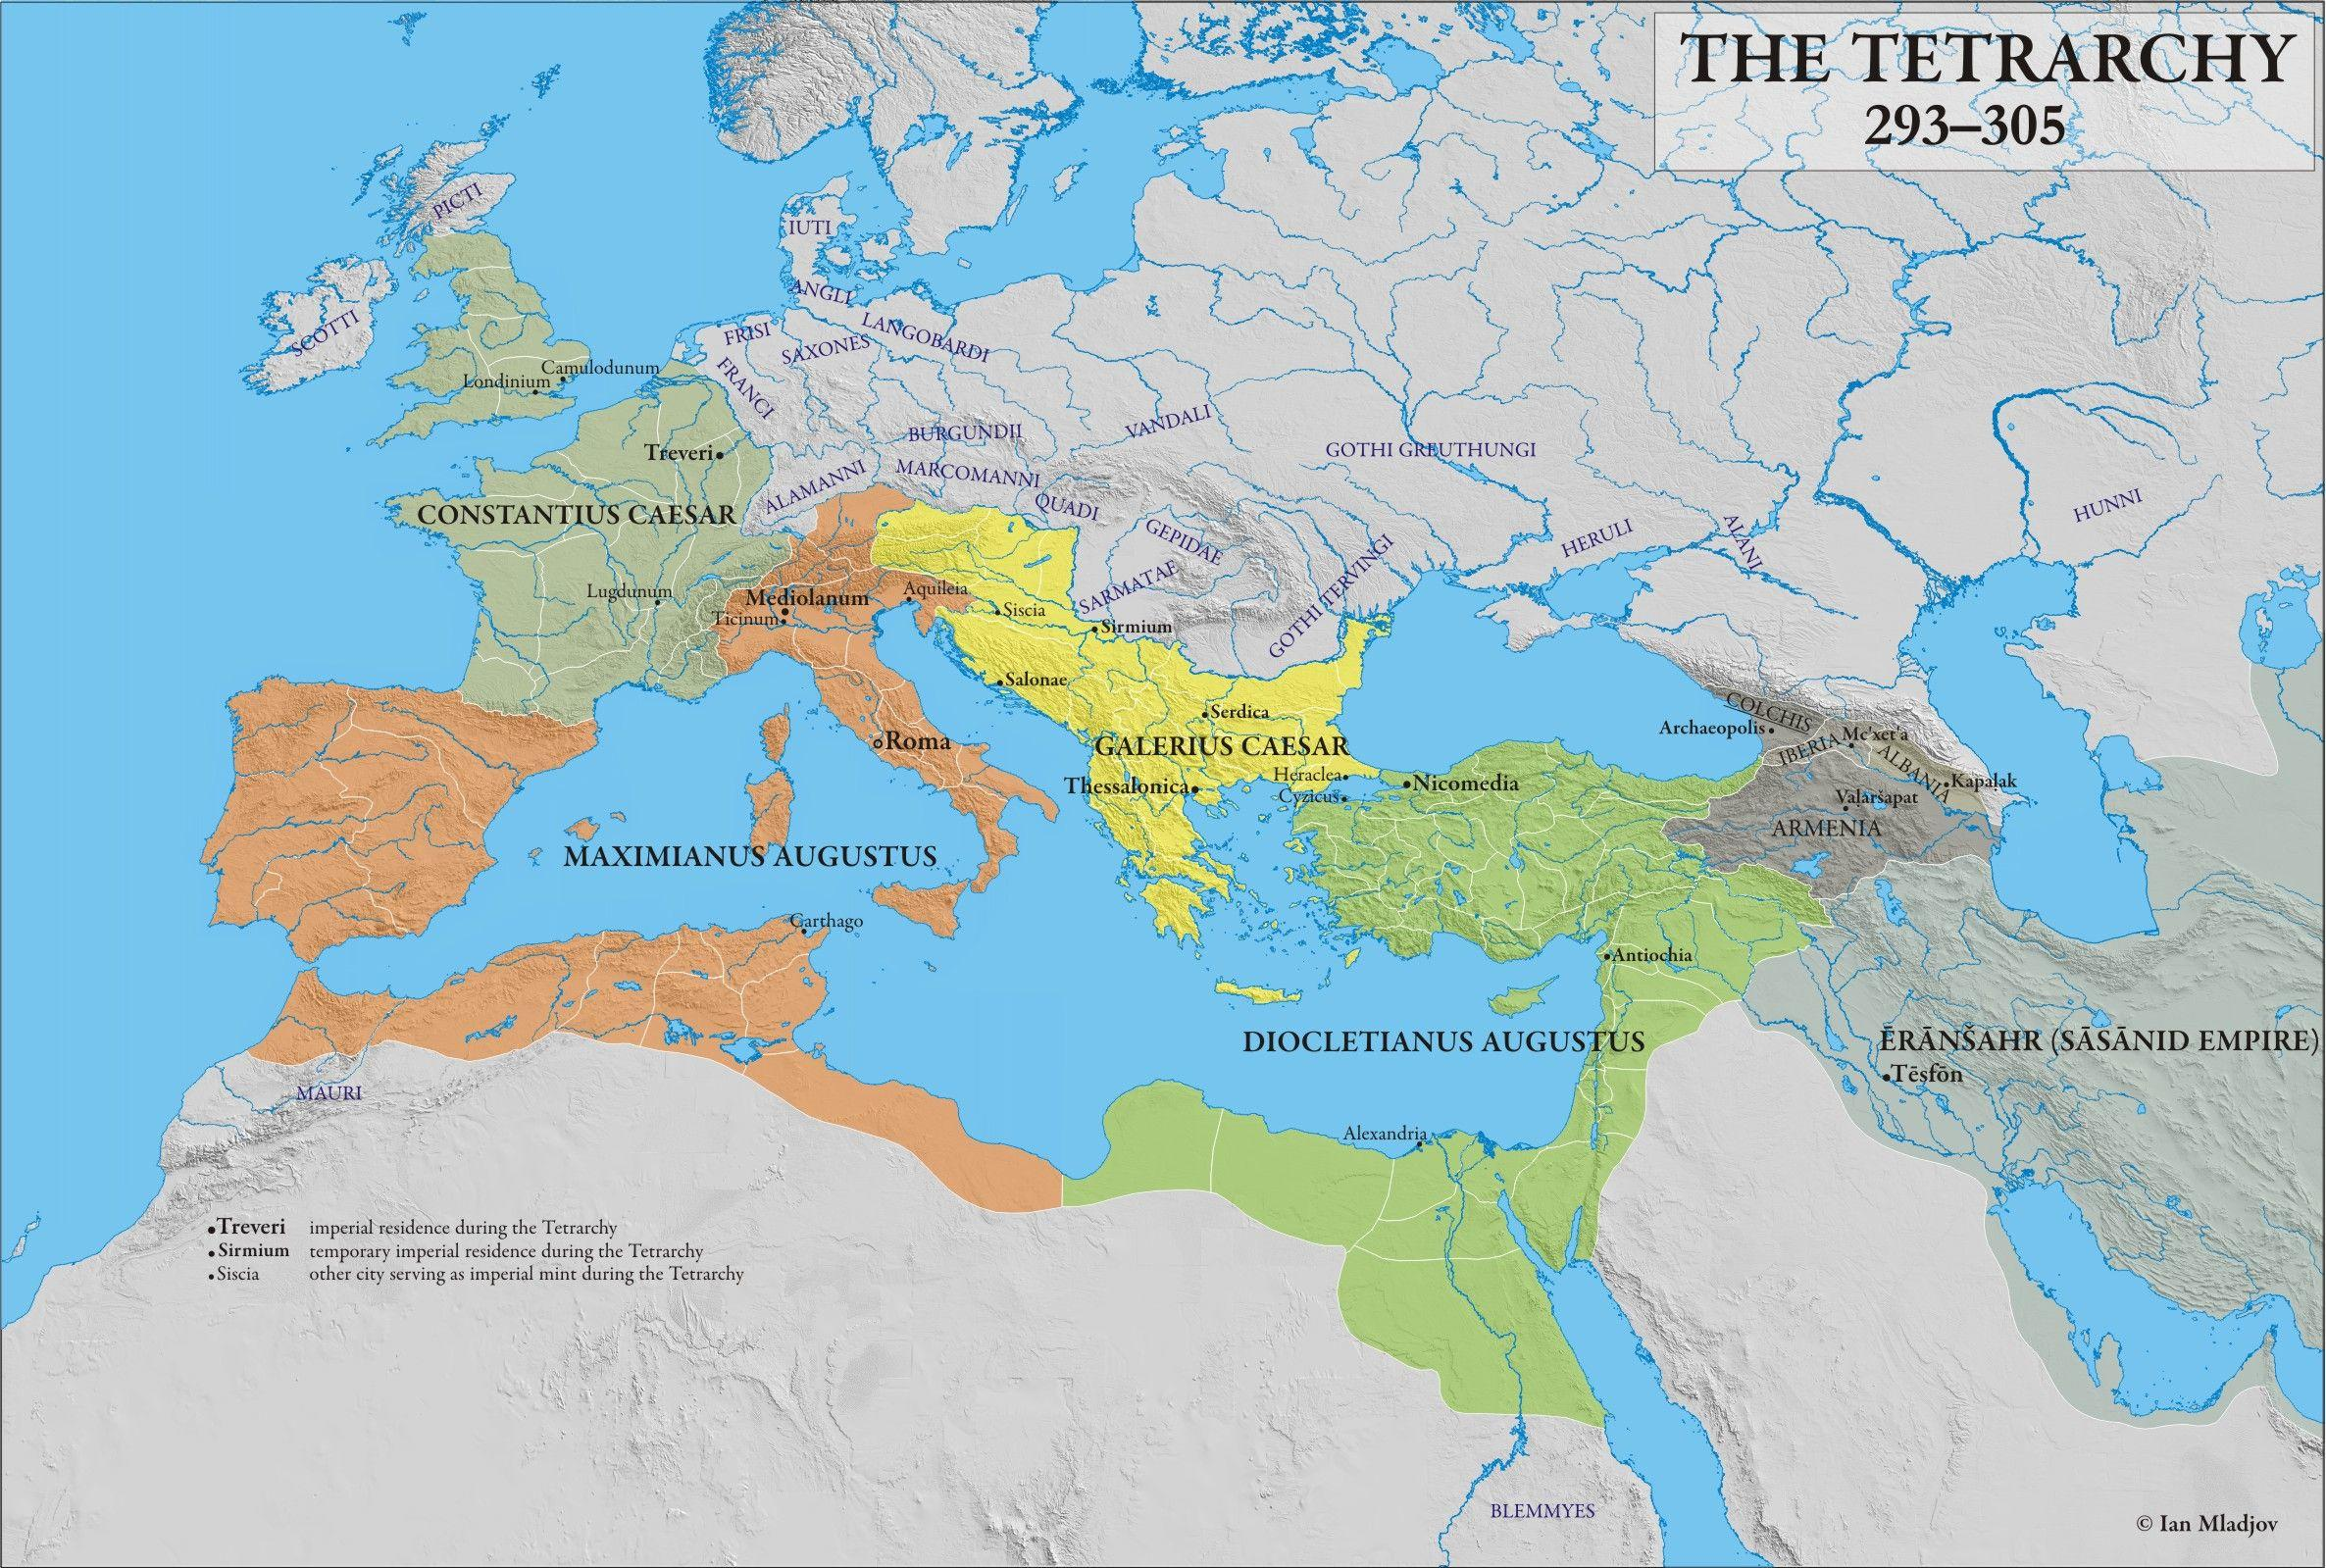 Tetrarchy Map and Rule in the Roman Empire - Istanbul Clues